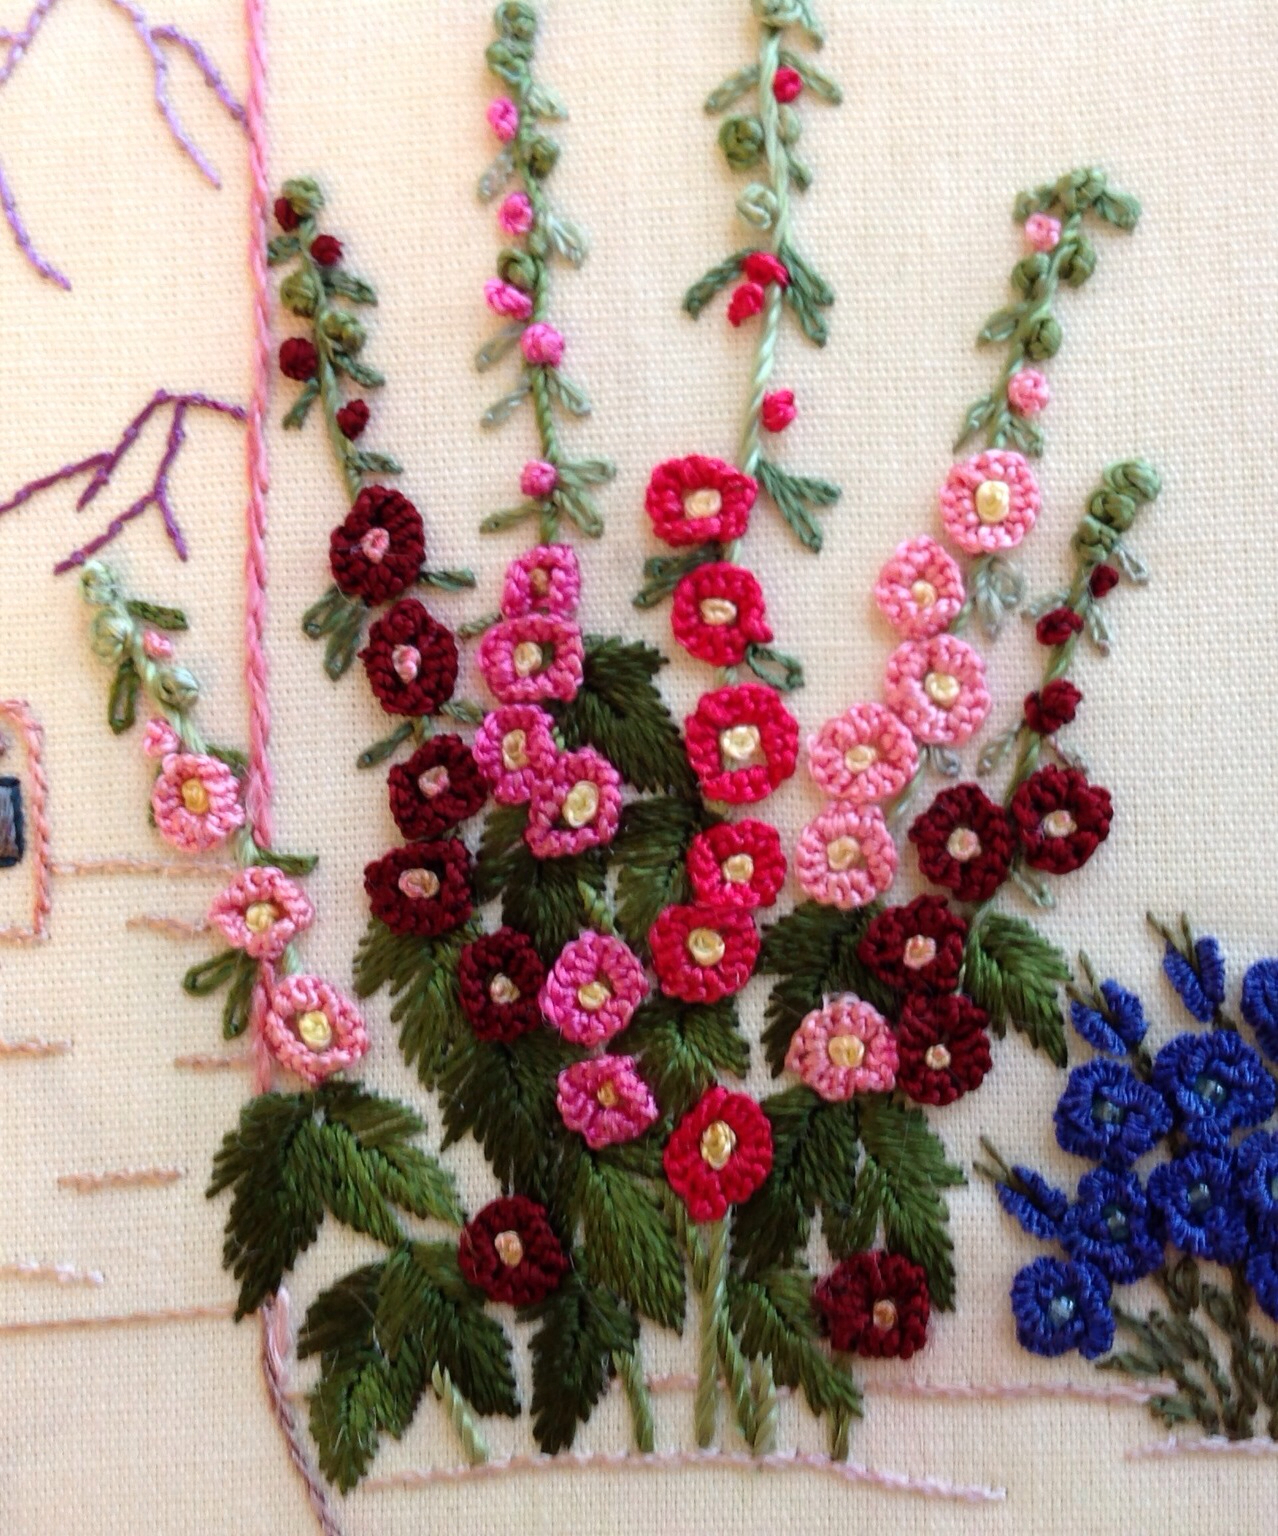 Again The Choice Of Thread, In This Case, Lola, The Thickest Of The Smooth  Brazilian Embroidery Threads, Made This Element Both Pretty And